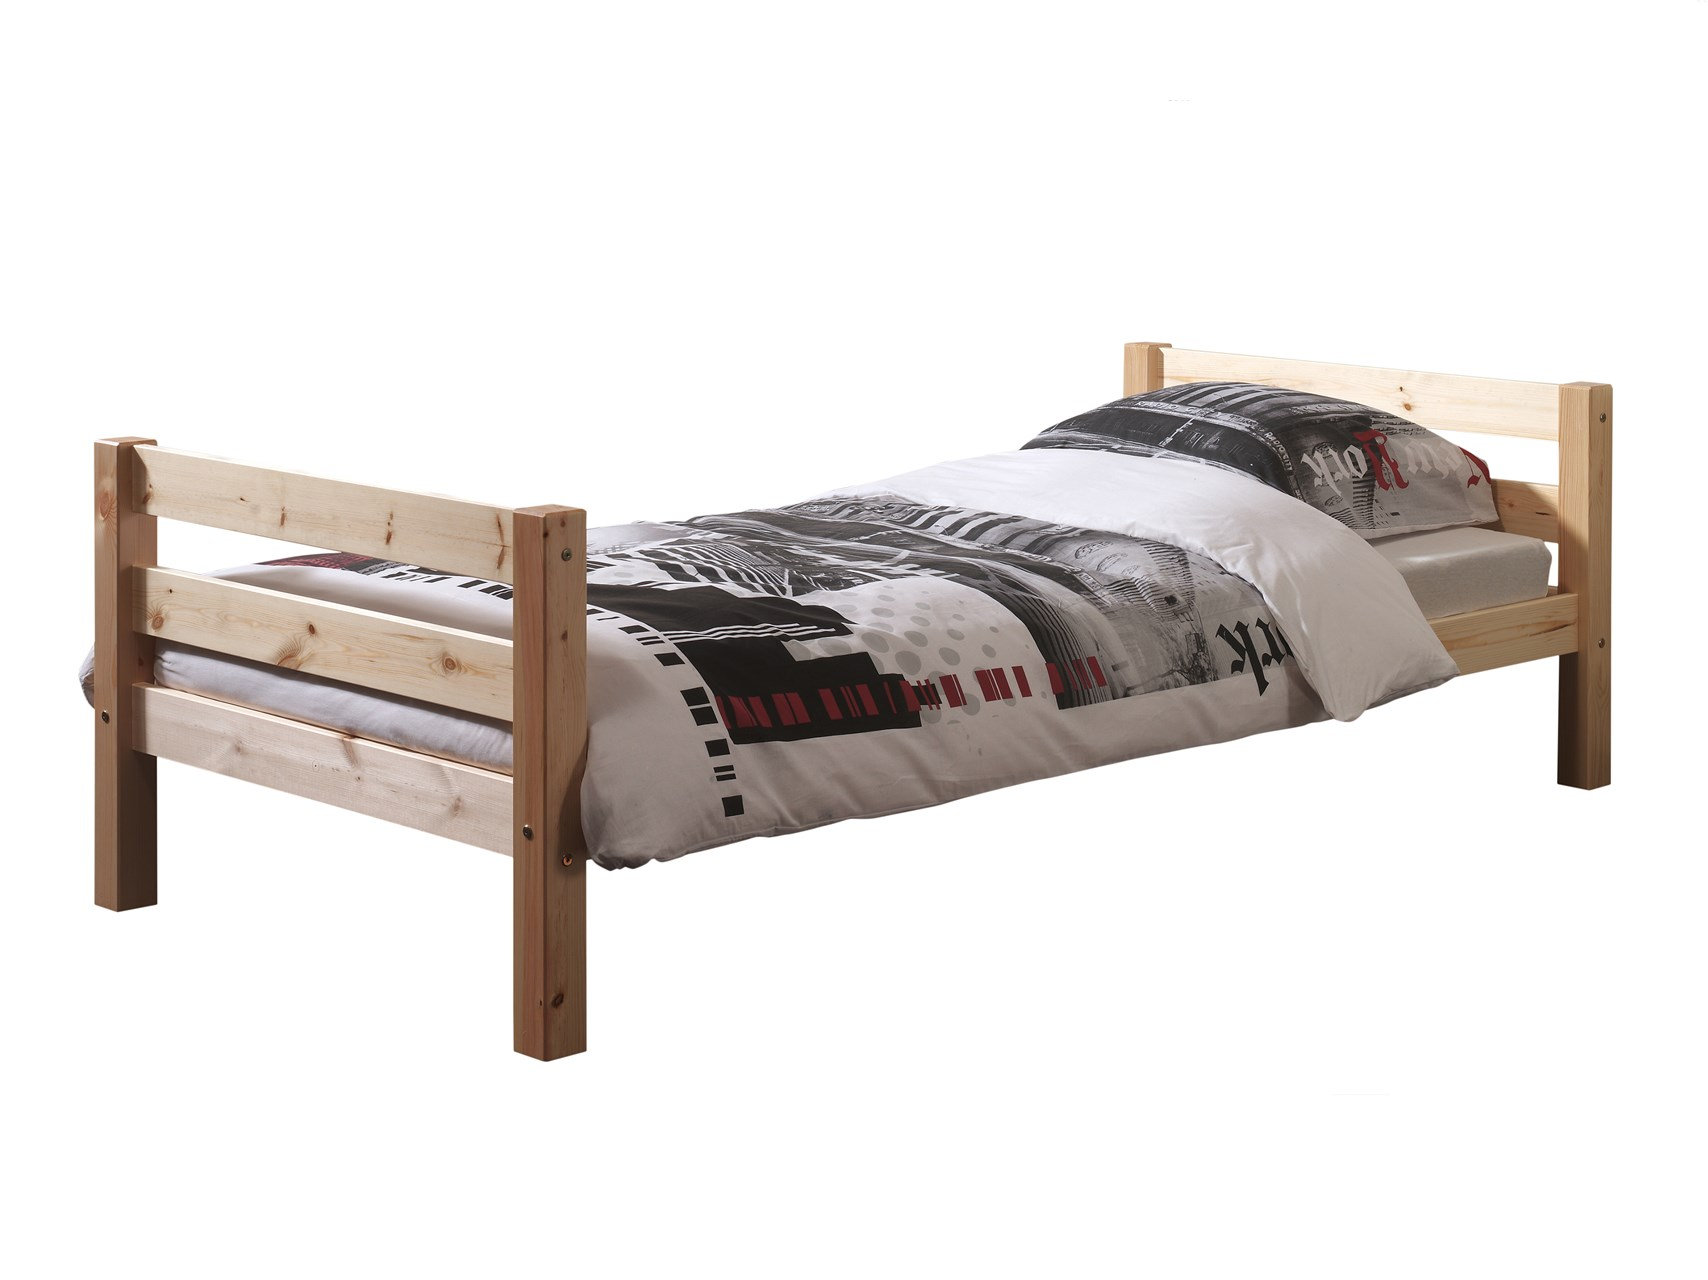 Houten Bed 1 Persoons Vipack Ledikant Pino Natuur Hout